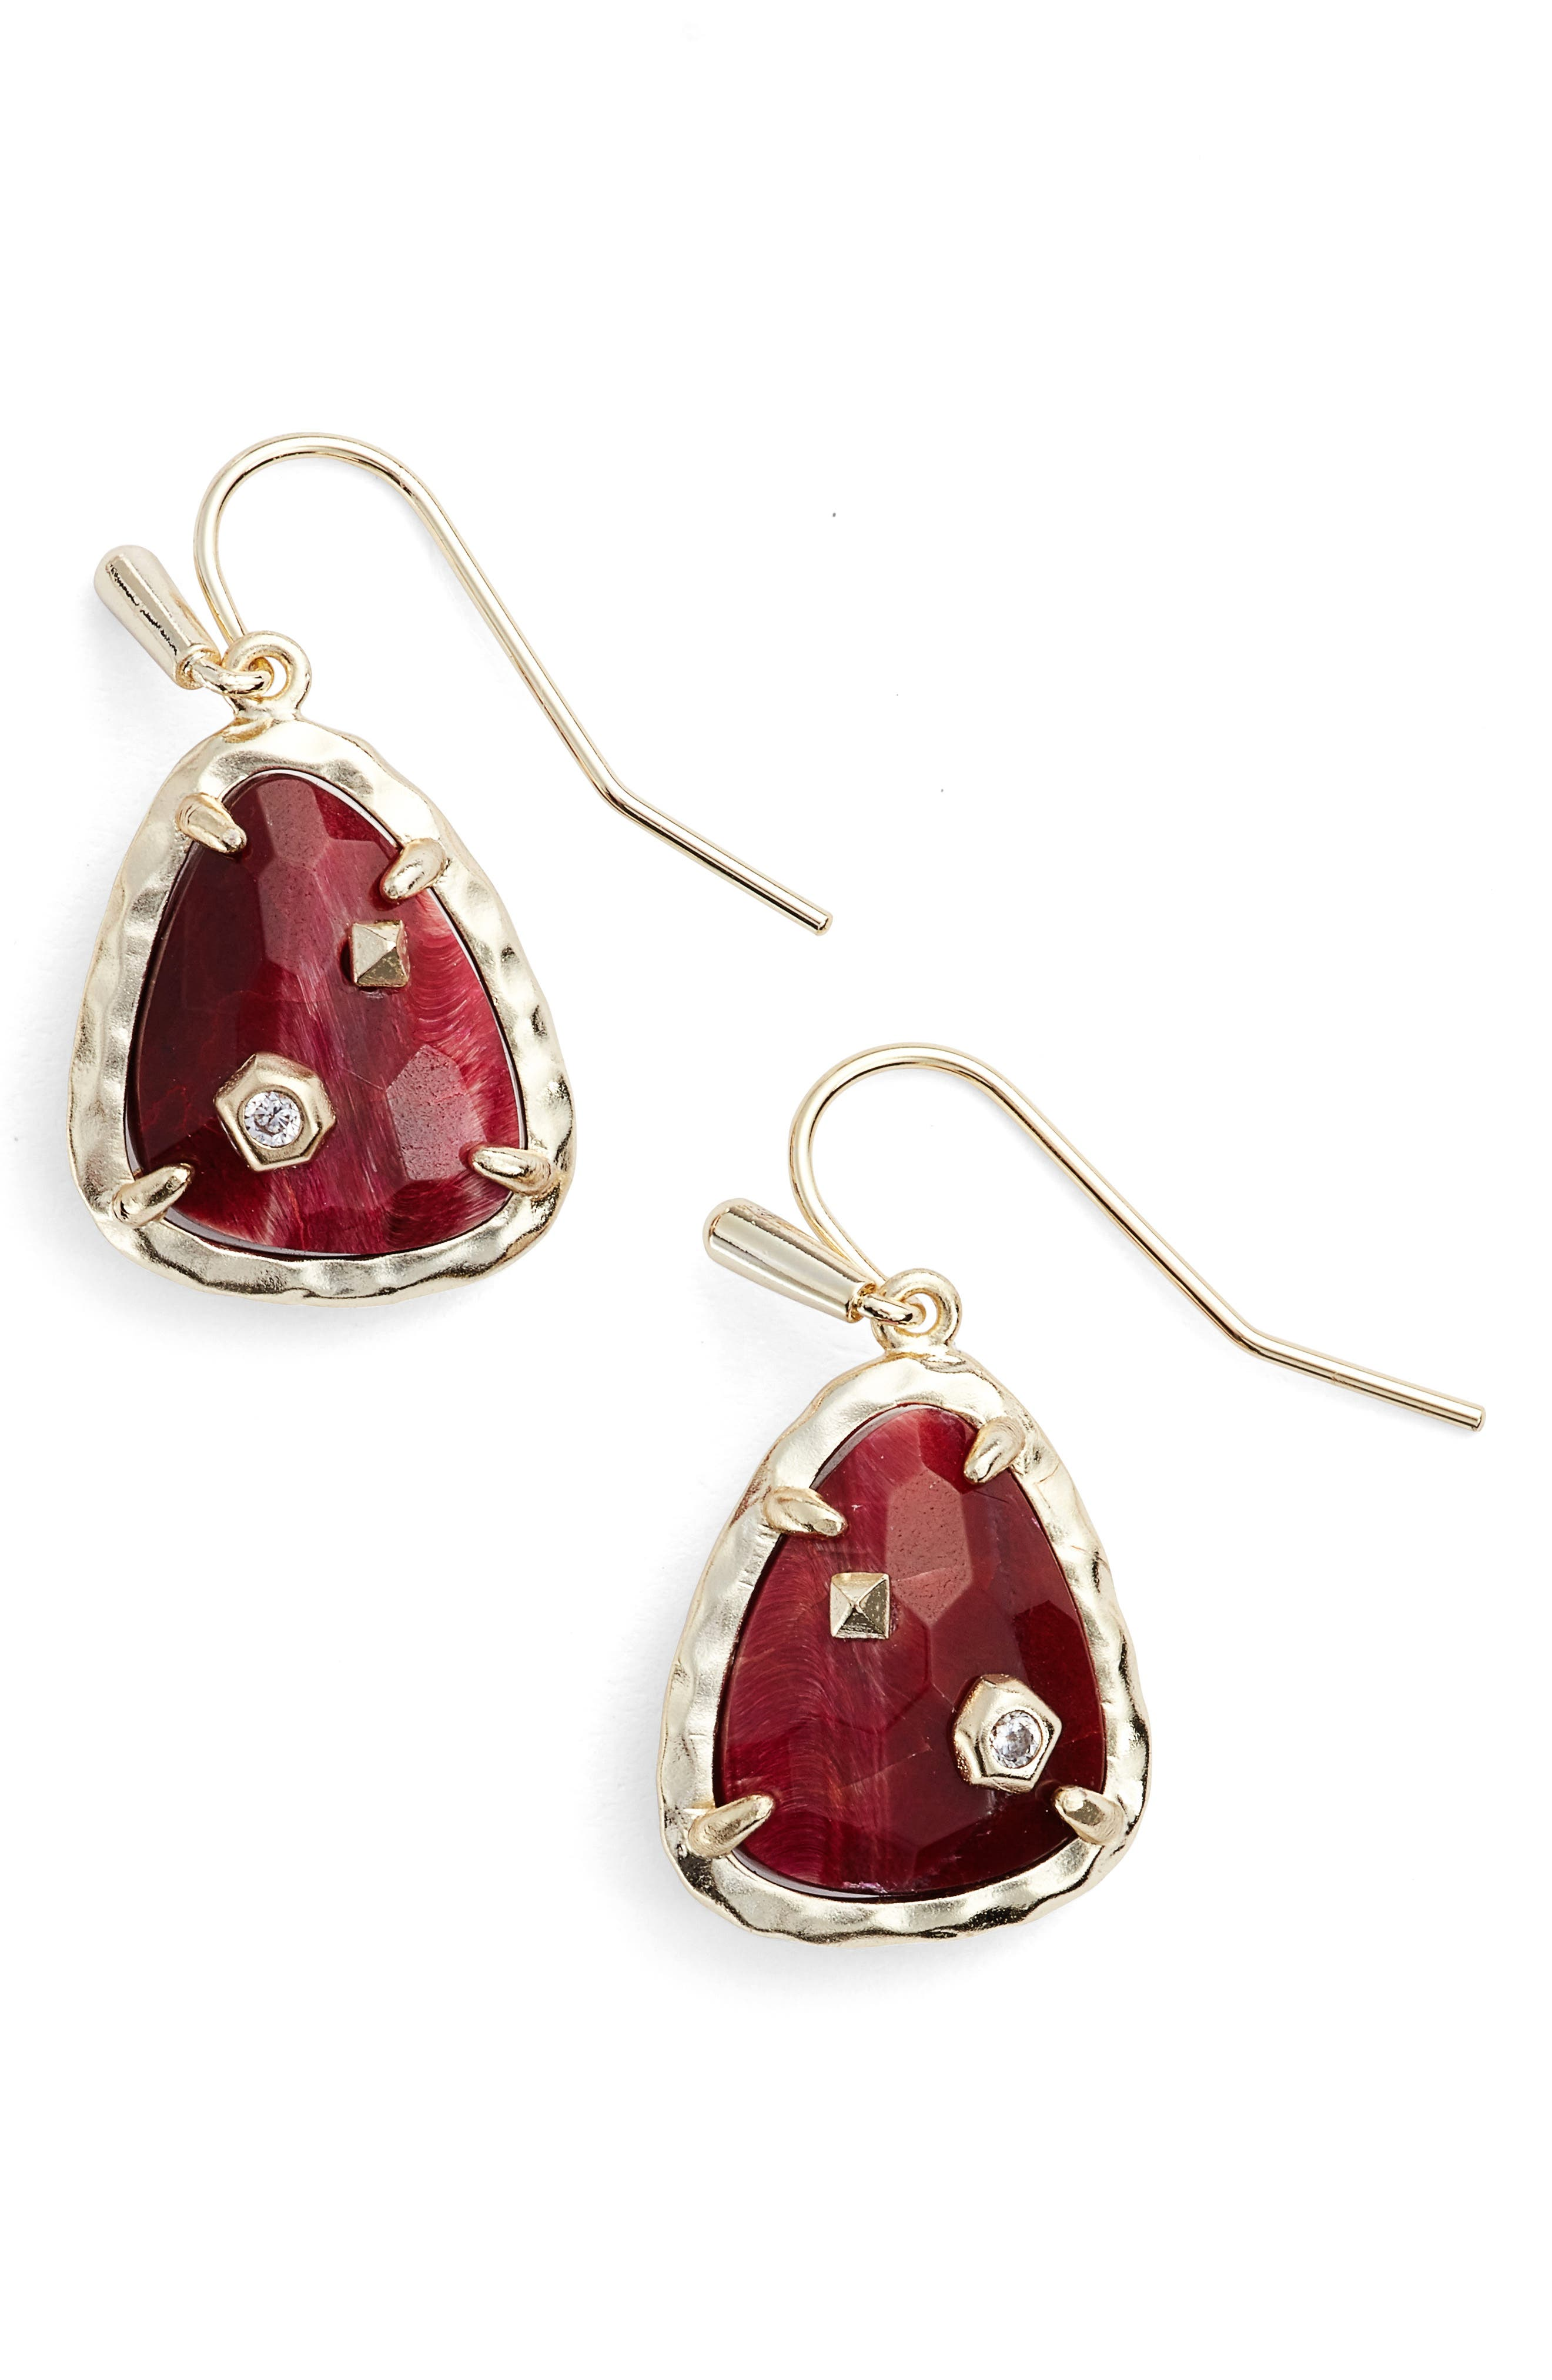 Kendra Scott Asher Drop Earrings